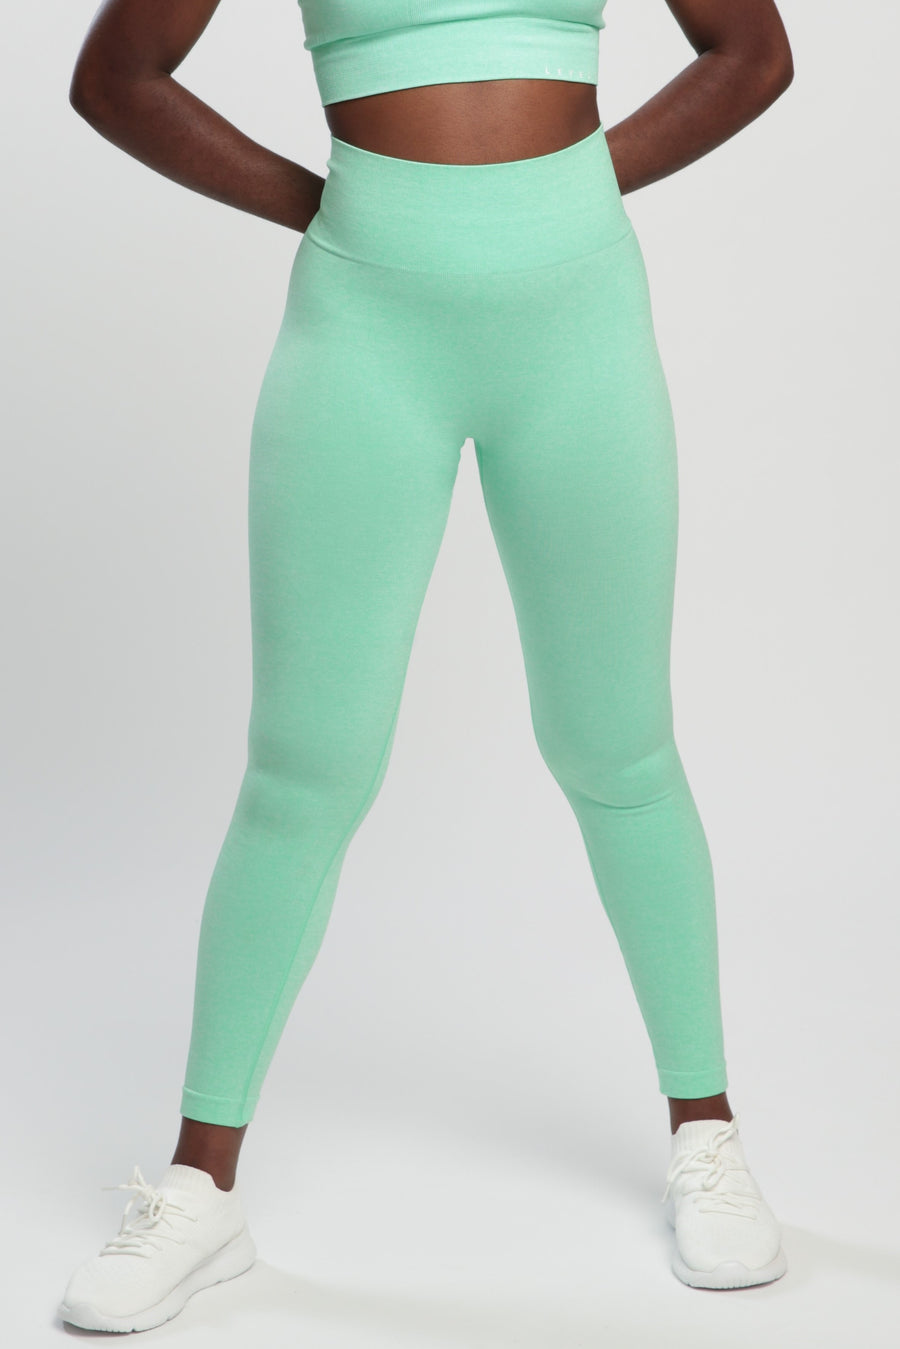 Mint Green Blessed High Waisted Leggings